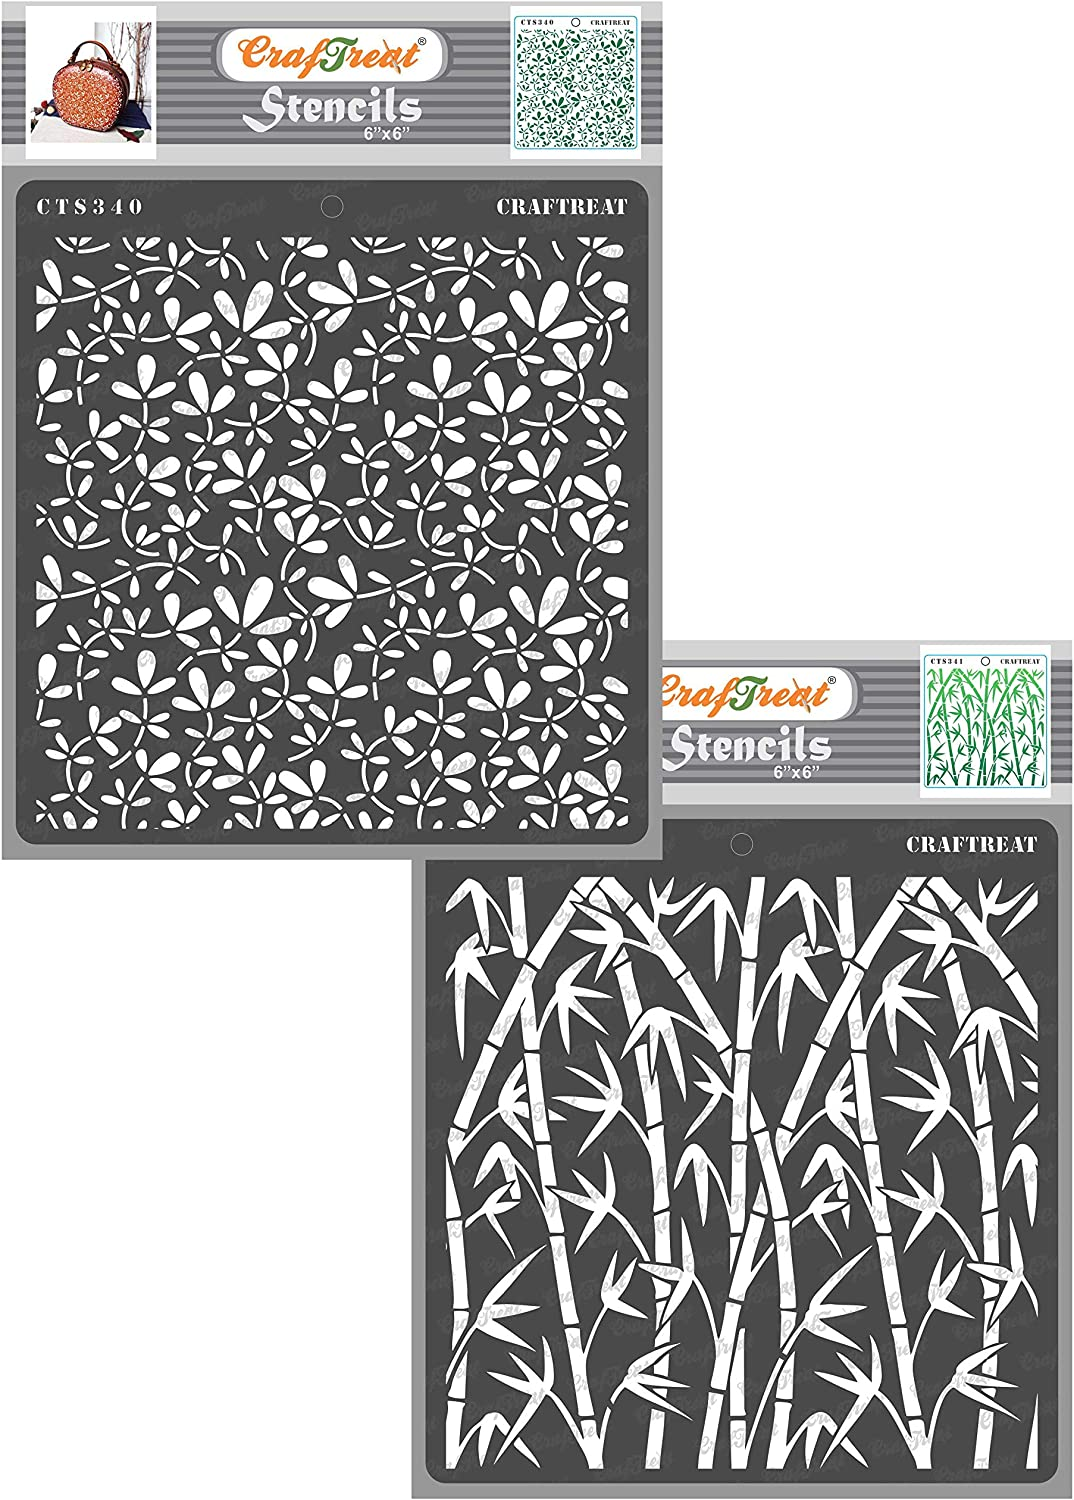 Wall Stencils for Painting Large Pattern Reusable DIY Craft Stencils Fabric 12x12 Inches Paper Bamboo Forest Stencils CrafTreat Bamboo Stencils for Painting on Wood Wall and Tile Canvas